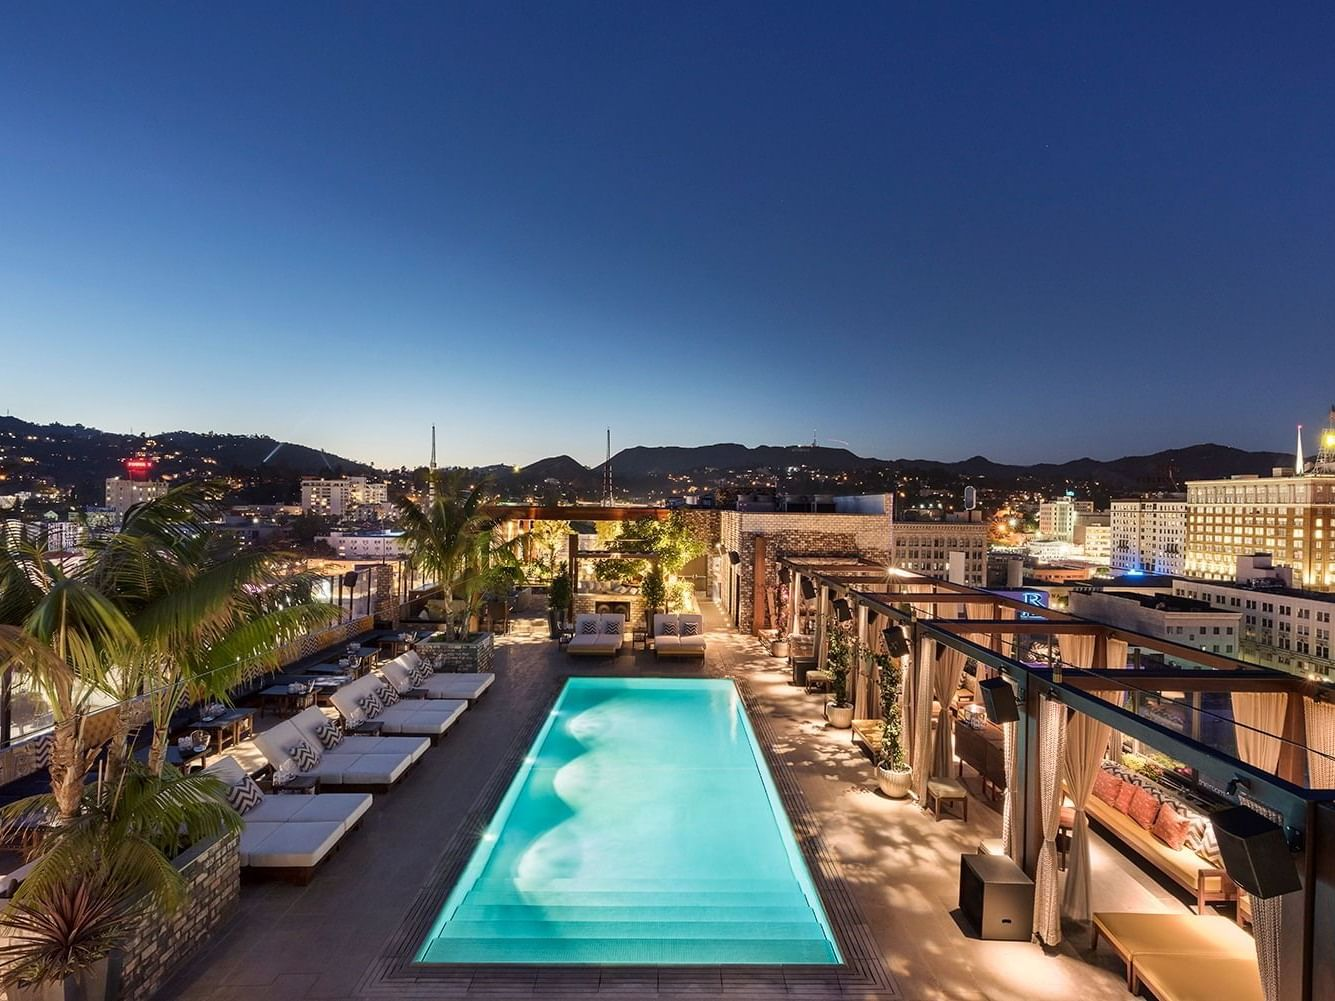 Aerial view of the Rooftop pool in Dream Hollywood LA at night